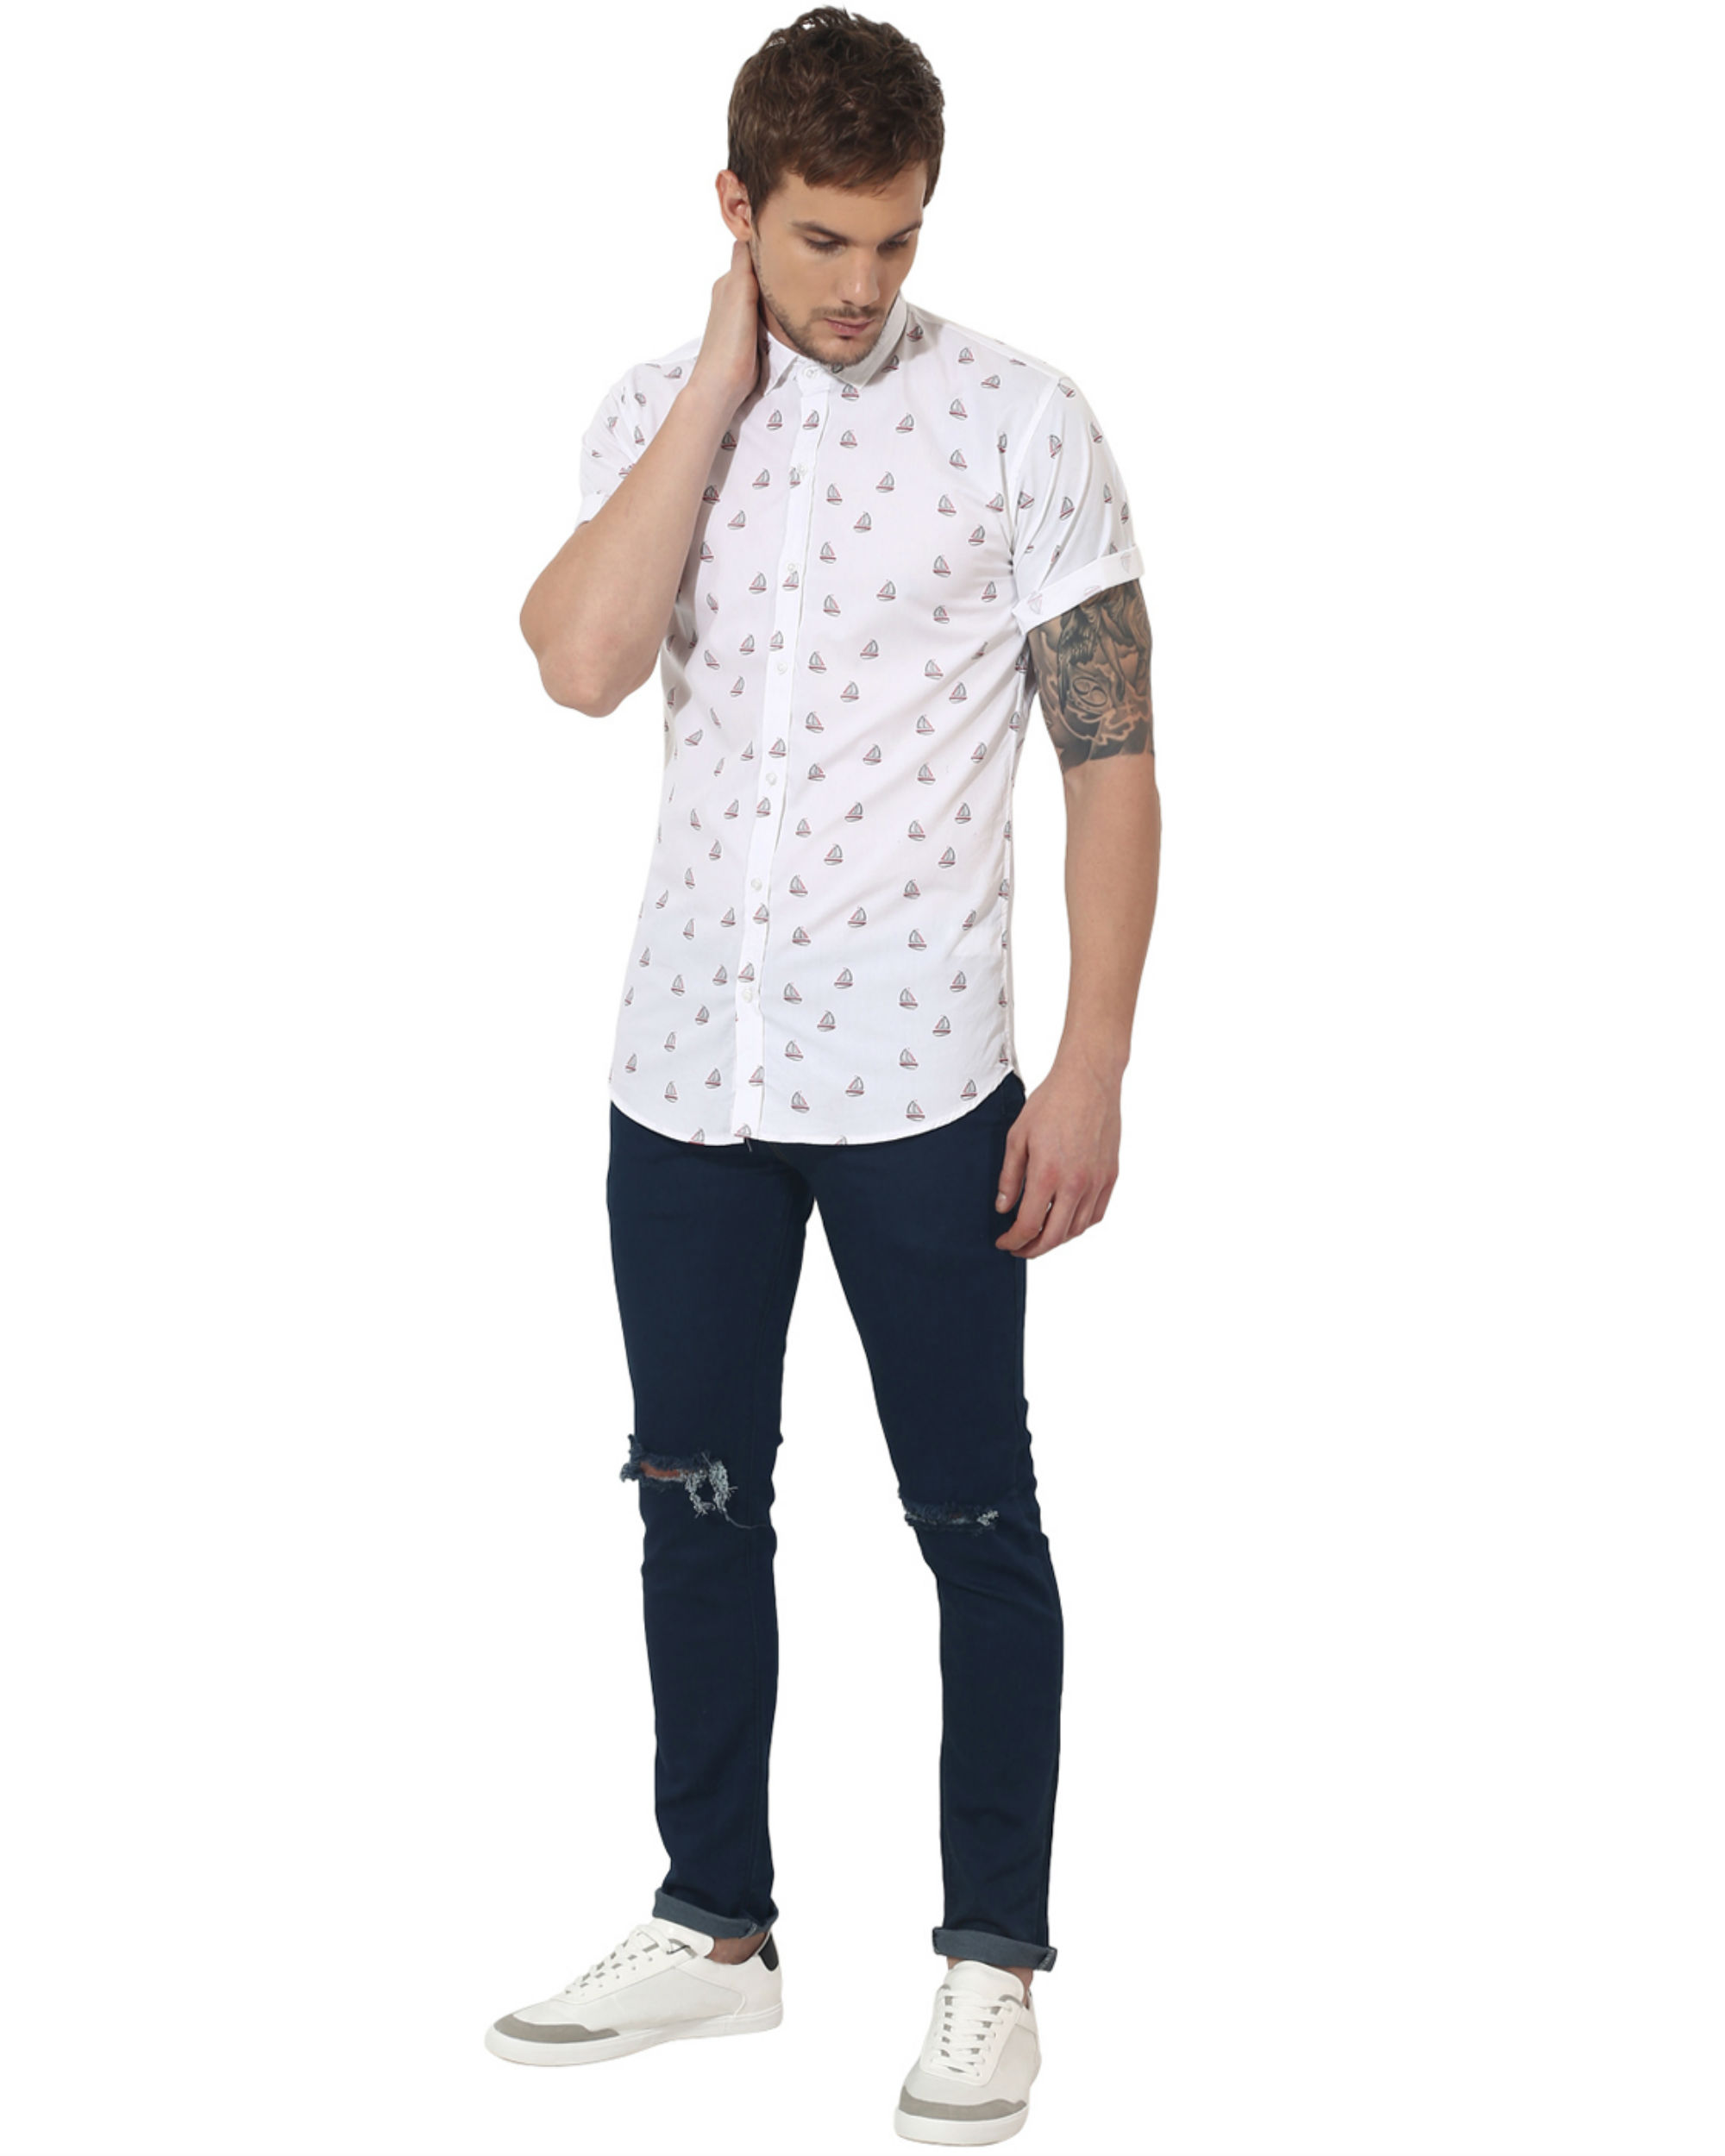 White boat printed casual shirt